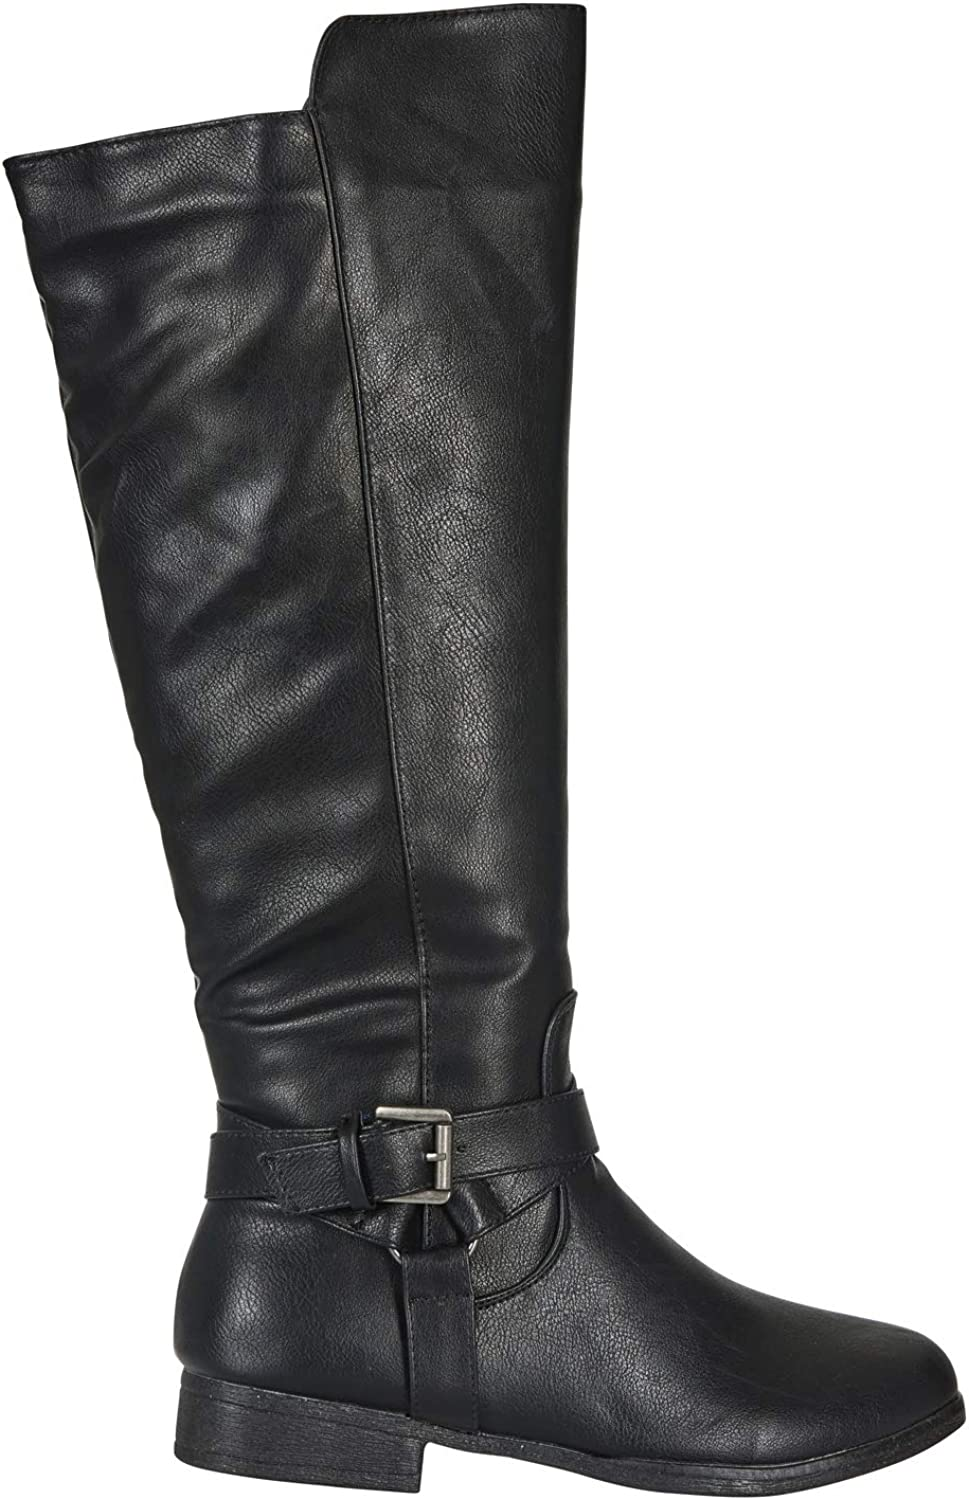 Via pink Women's Microsuede Knee-High Riding Boot Buckle Straps Slide-On Fashion shoes